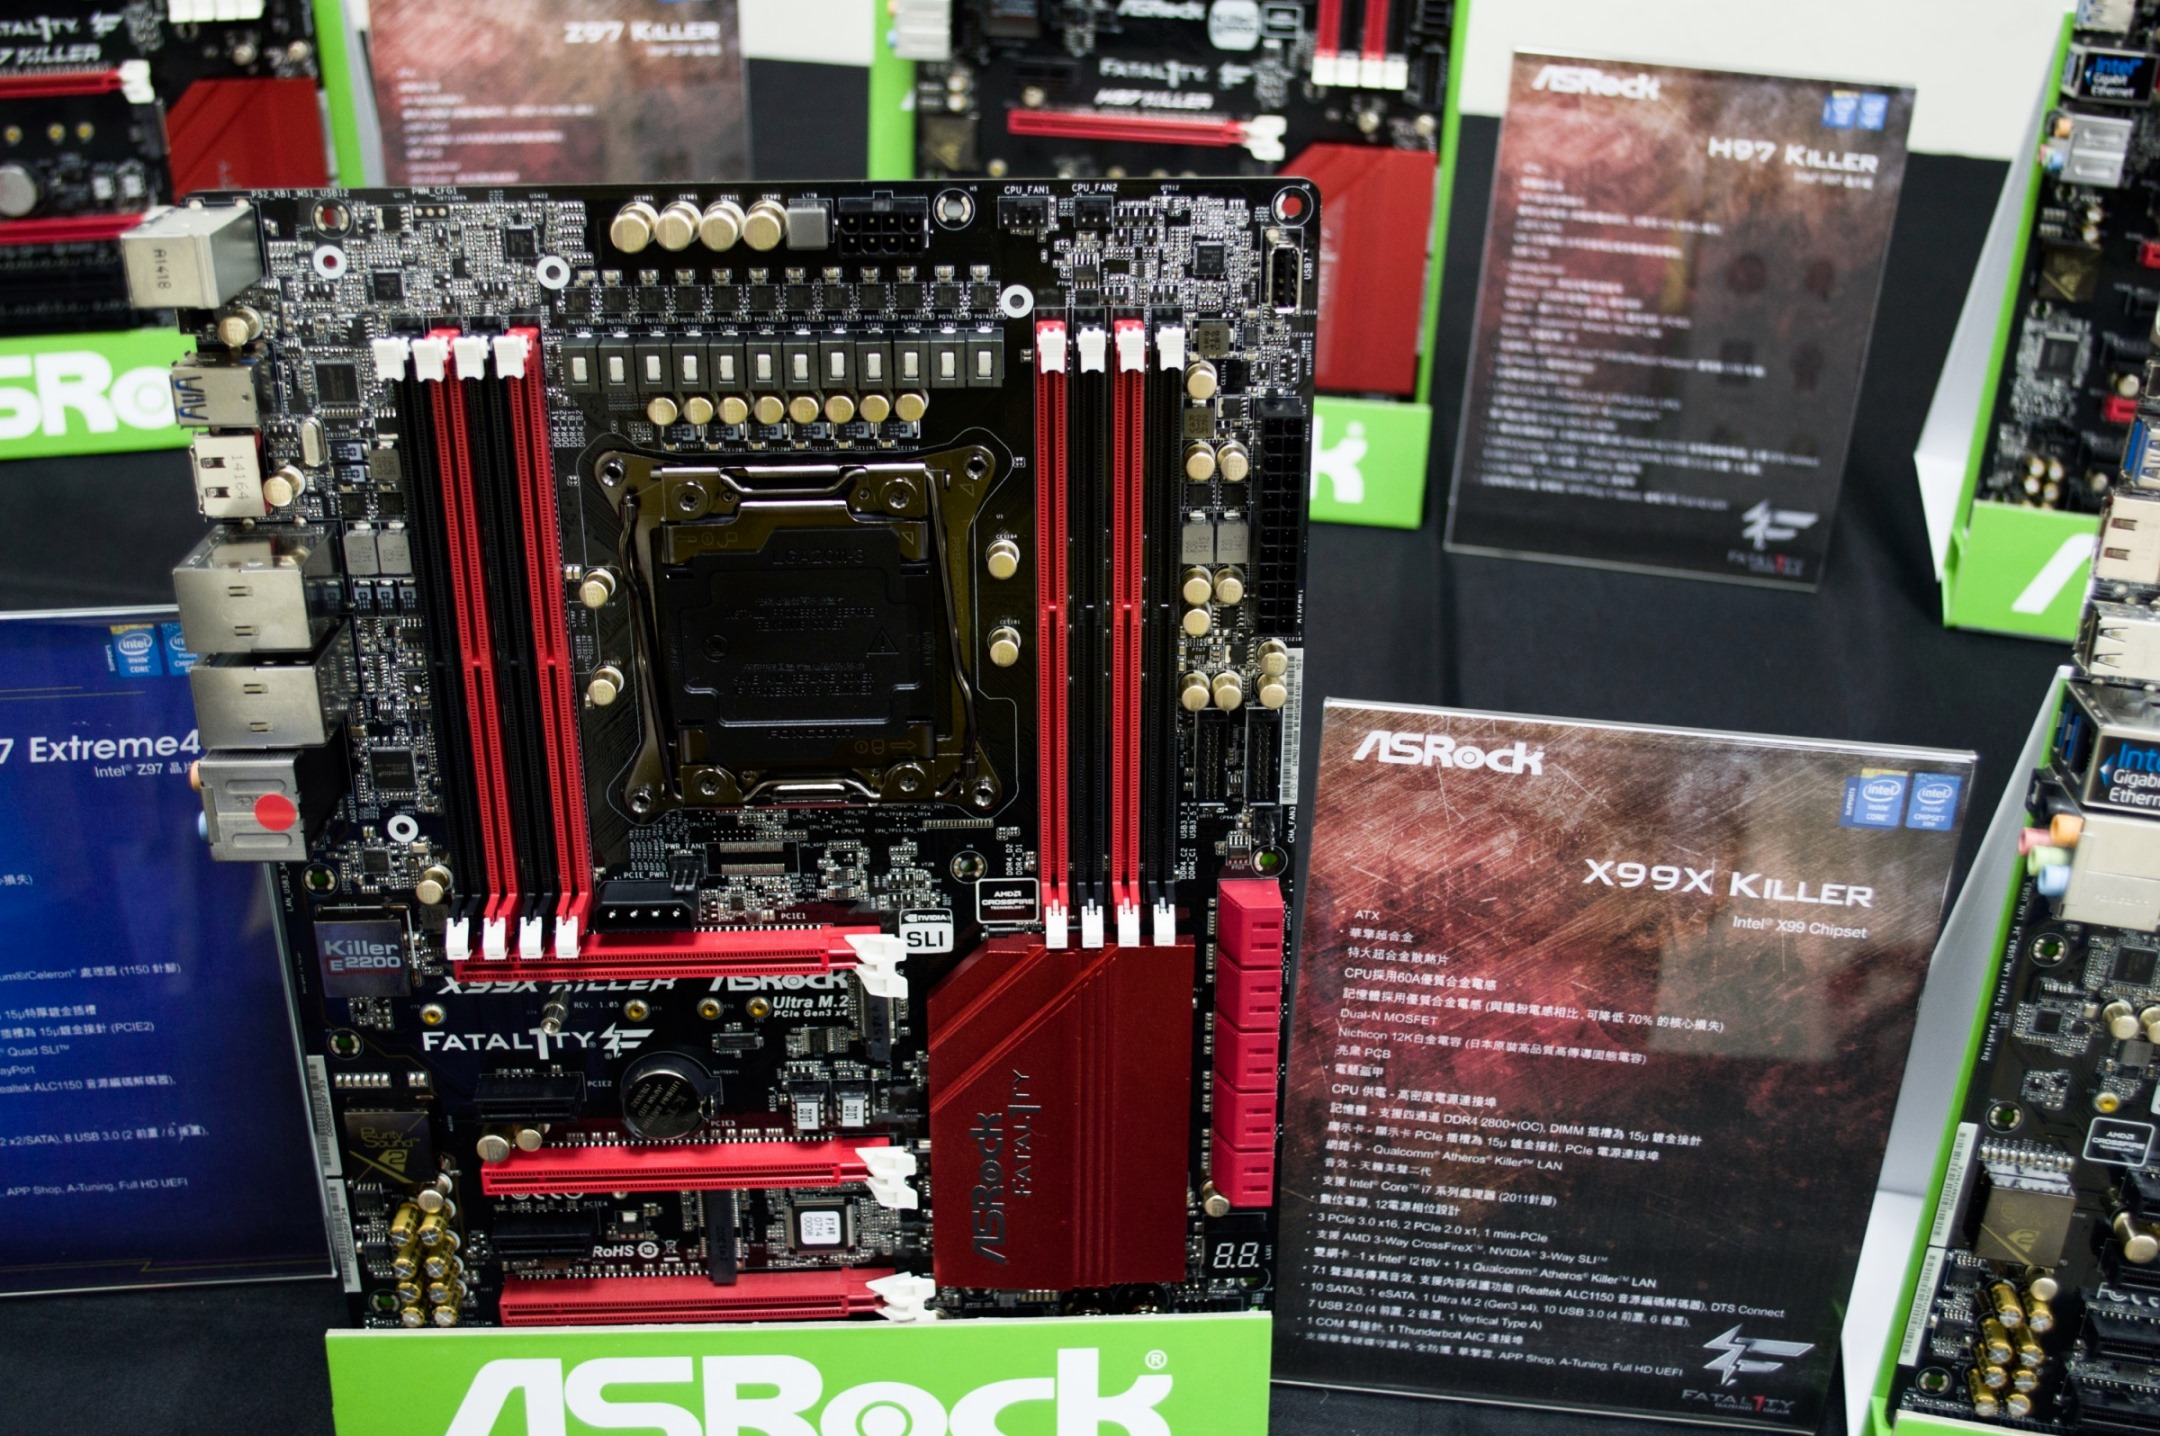 ASRock Fatal1ty X99X Killer, X99 Extreme6 e X99 Extreme4 in mostra